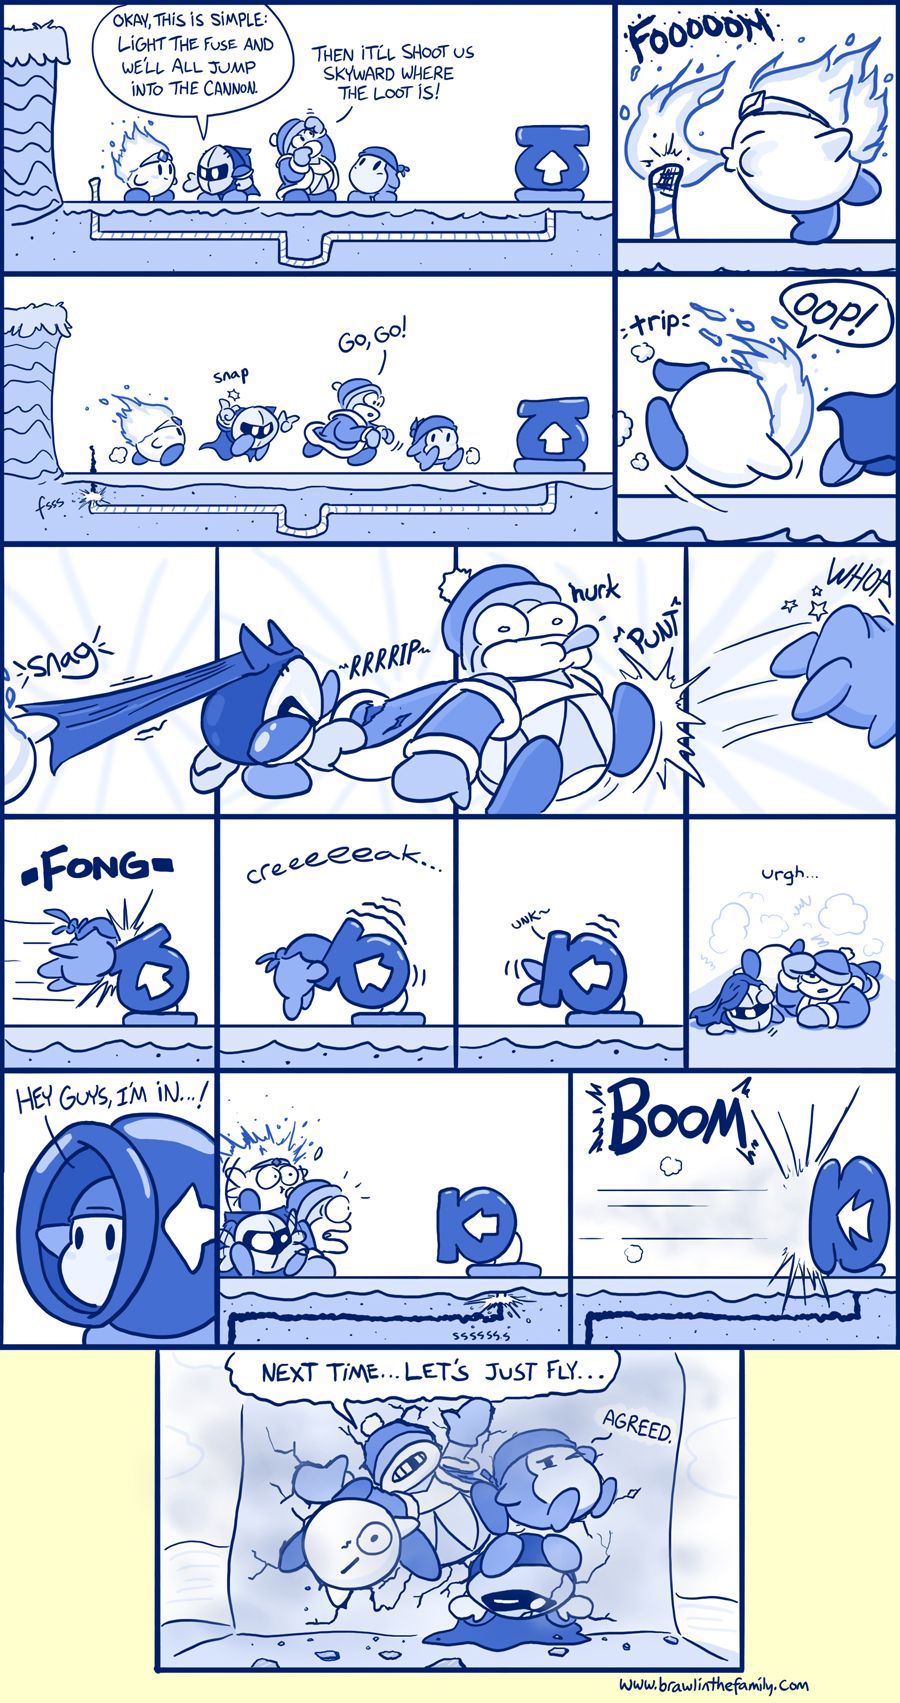 Dream Land Cannon. This one had me going!!! XD